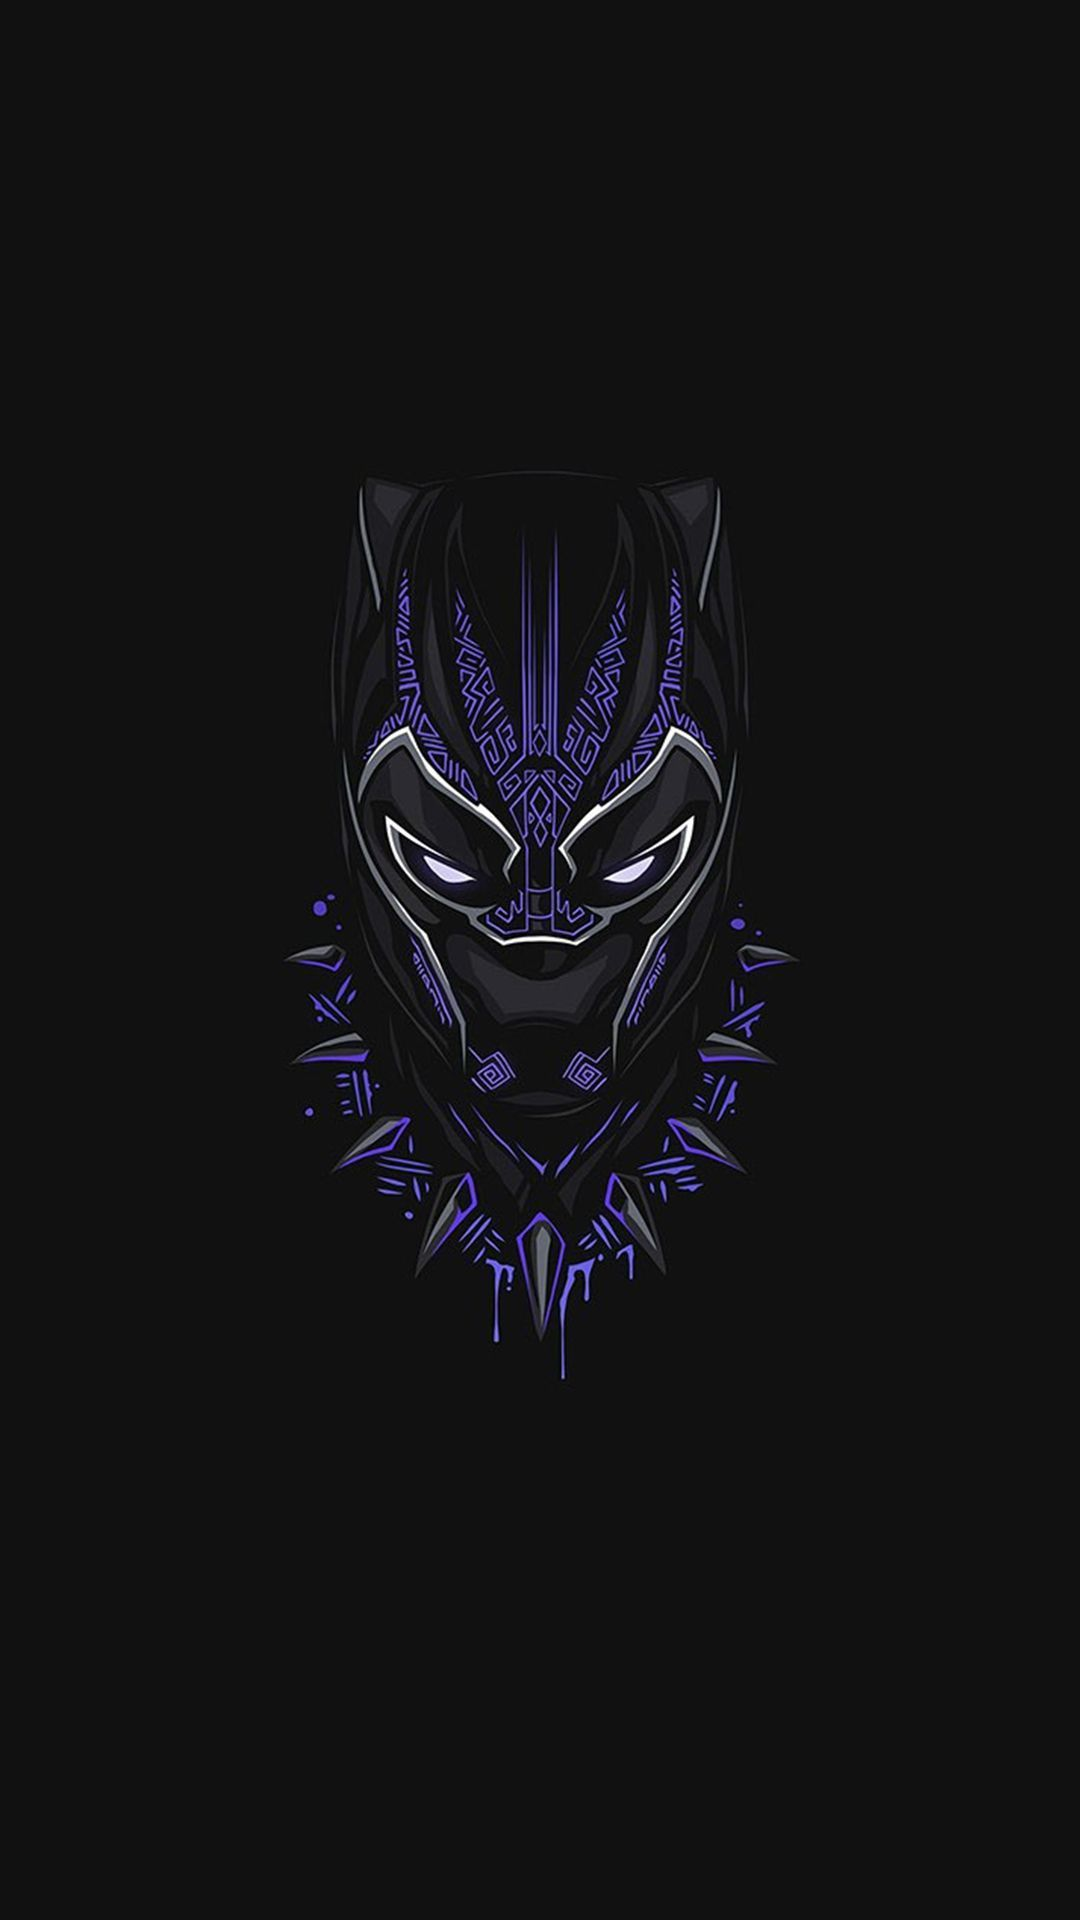 1080x1920 Black Panther Purple Minimal iPhone Wallpaper | [Mᴀʀᴠᴇʟ ...